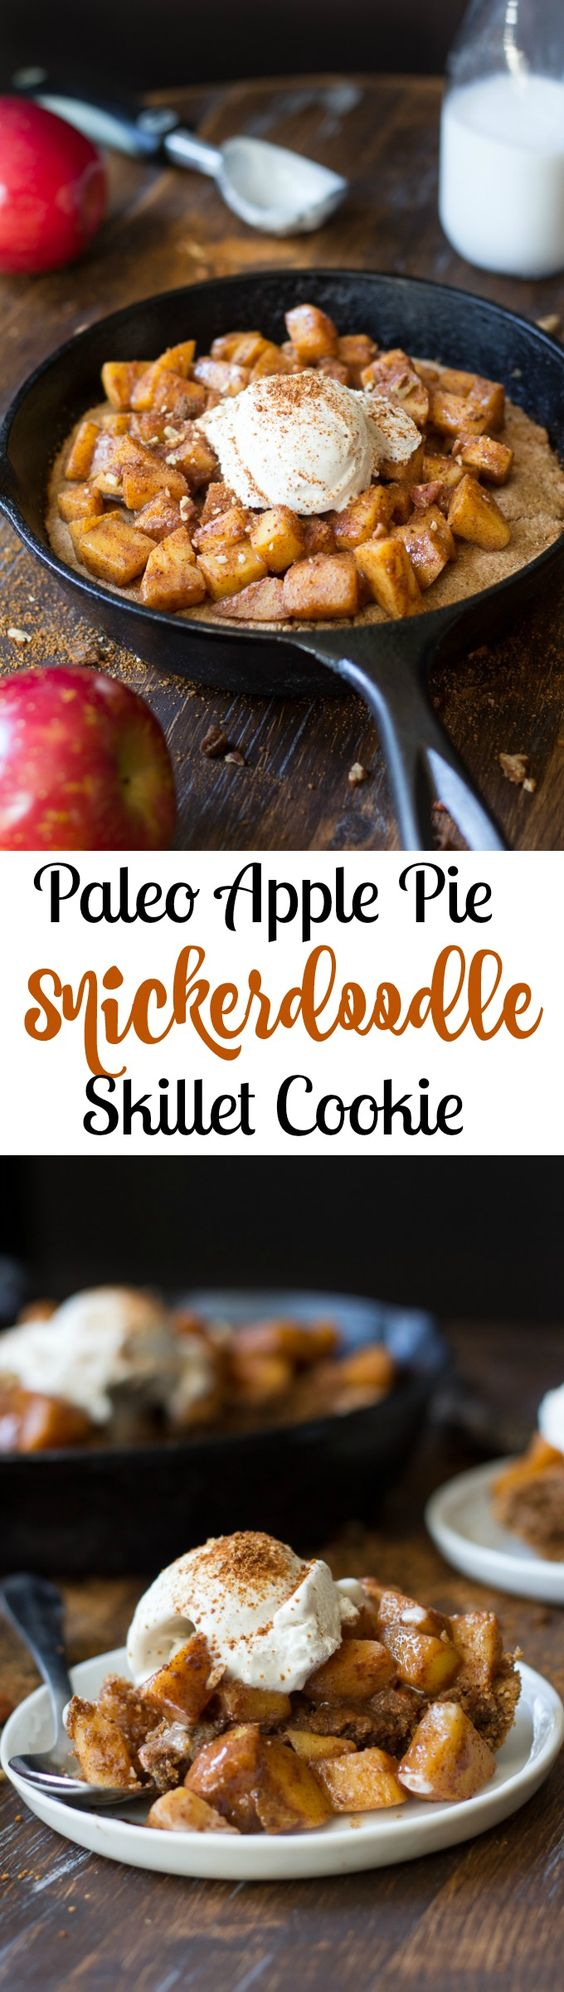 paleo-apple-pie-snickerdoodle-cookie-recipe